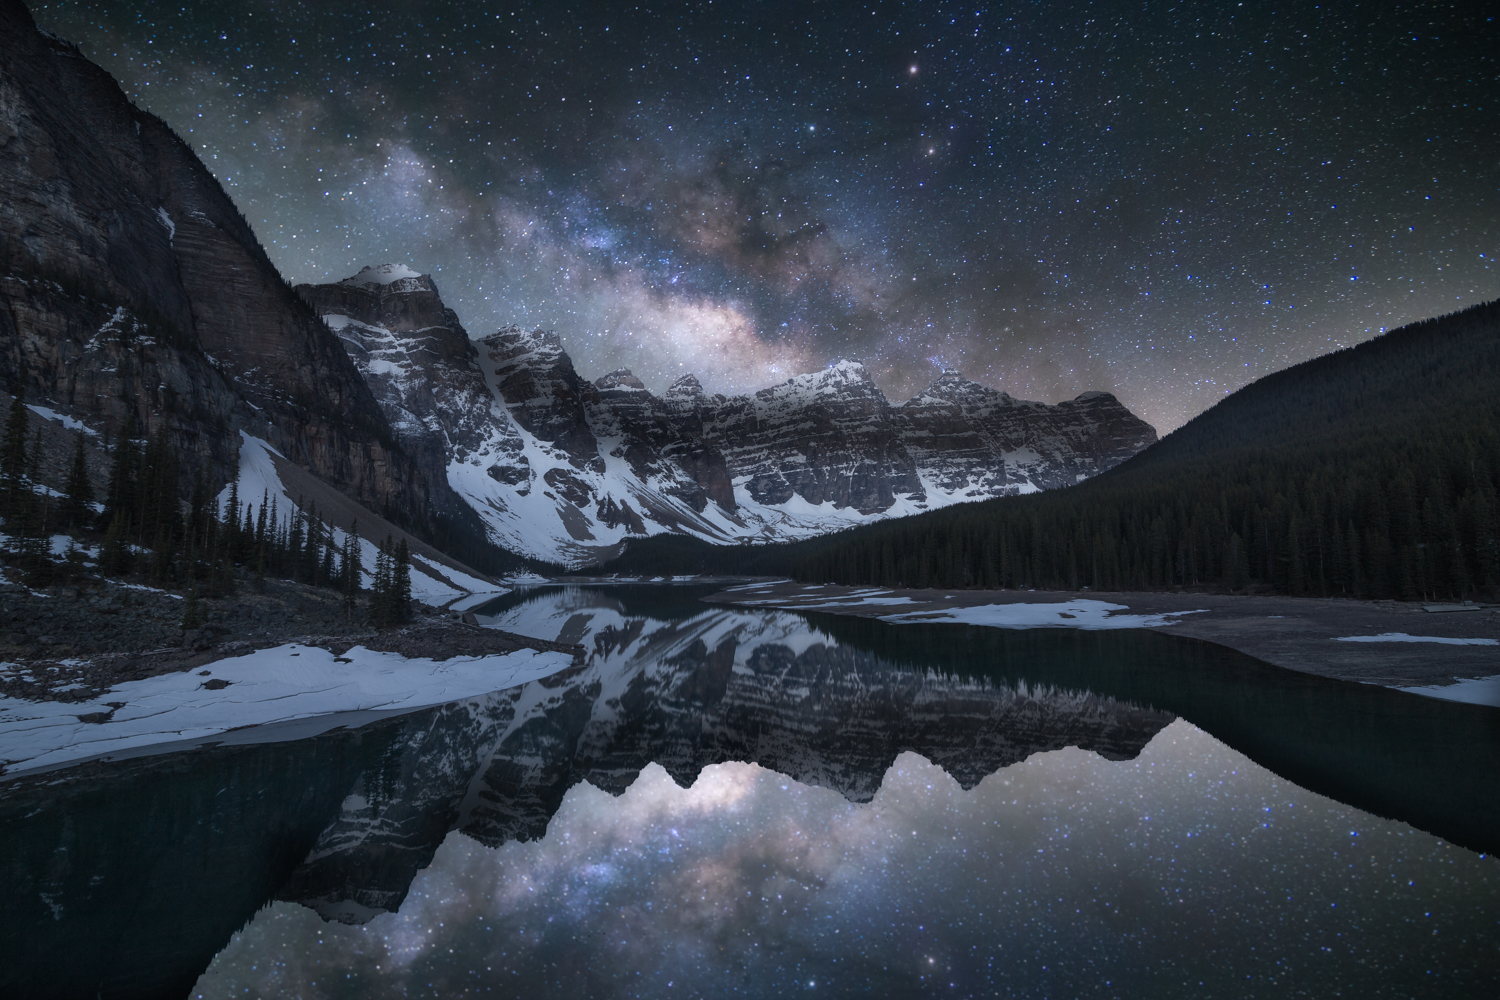 Moraine Lake - Milky Way Editing Tutorial